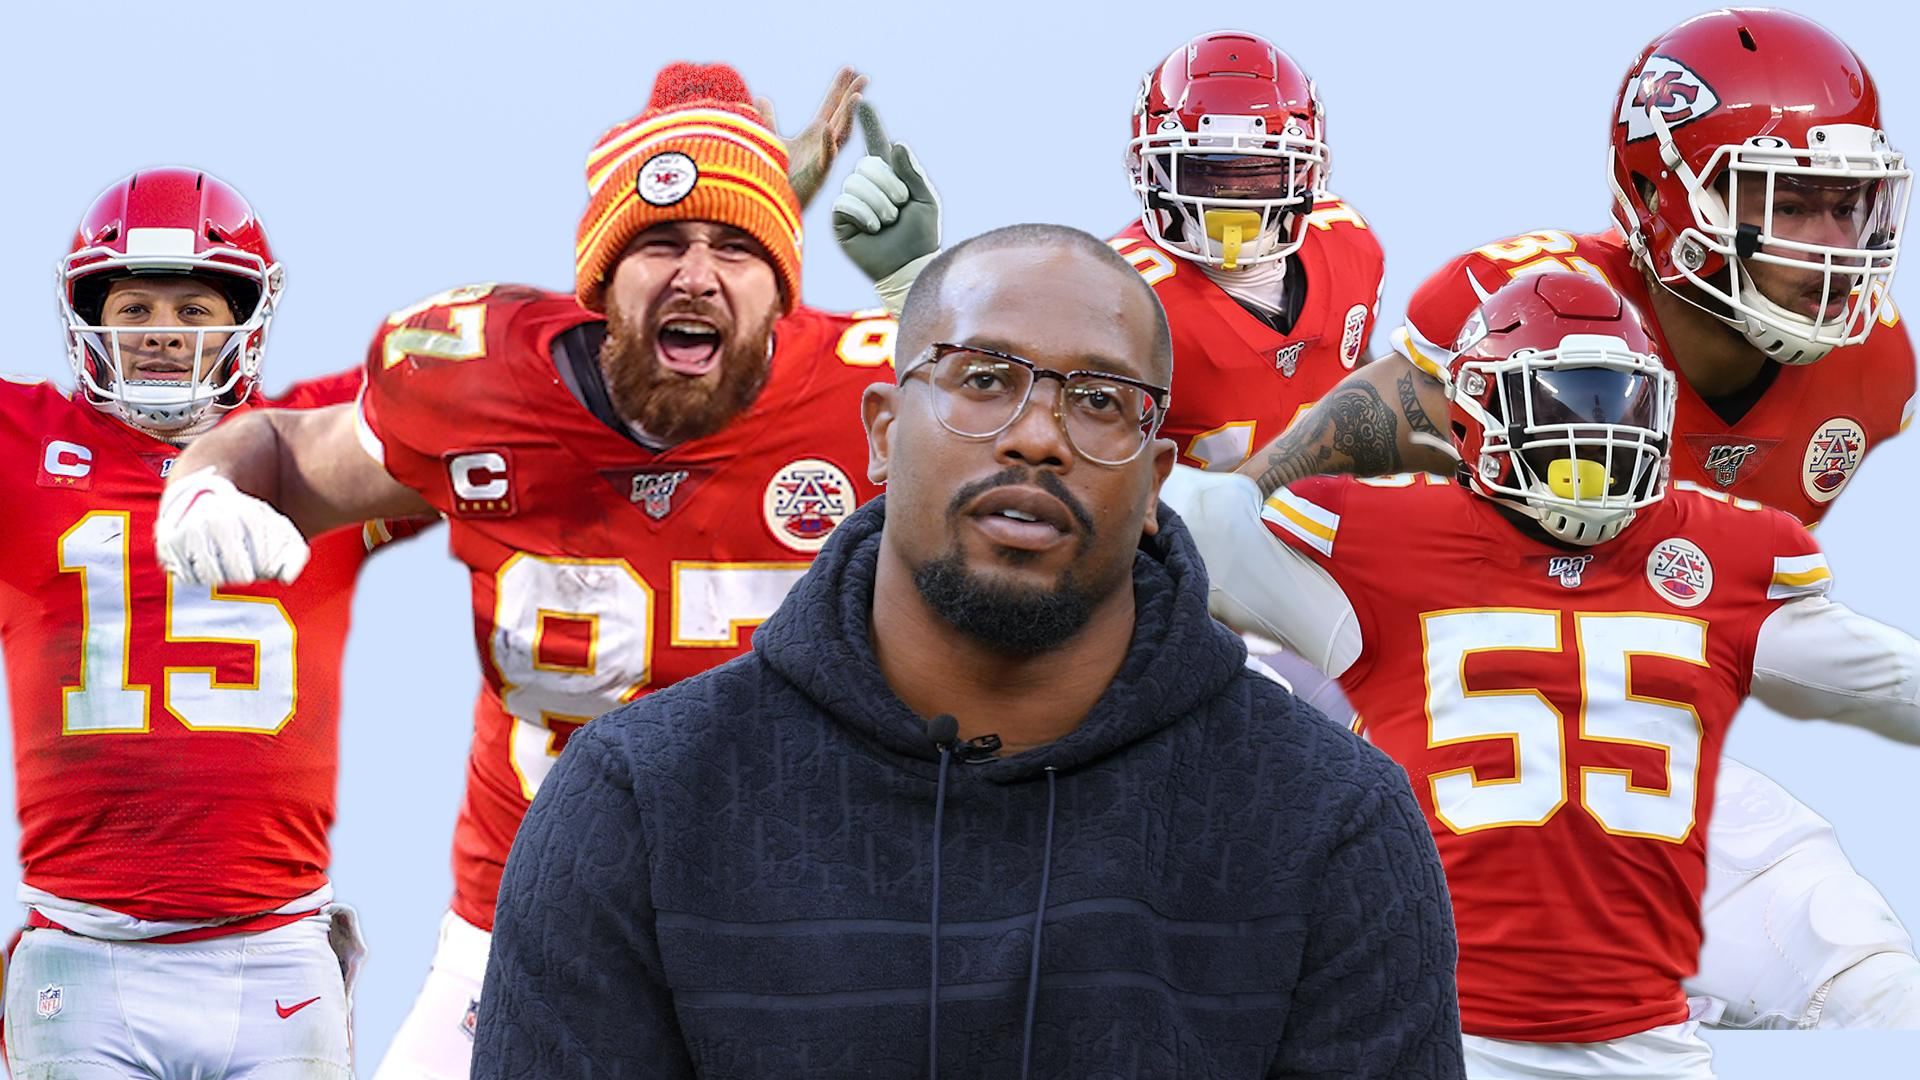 Super Bowl LIV: Von Miller lists pros and cons for the Chiefs and 49ers